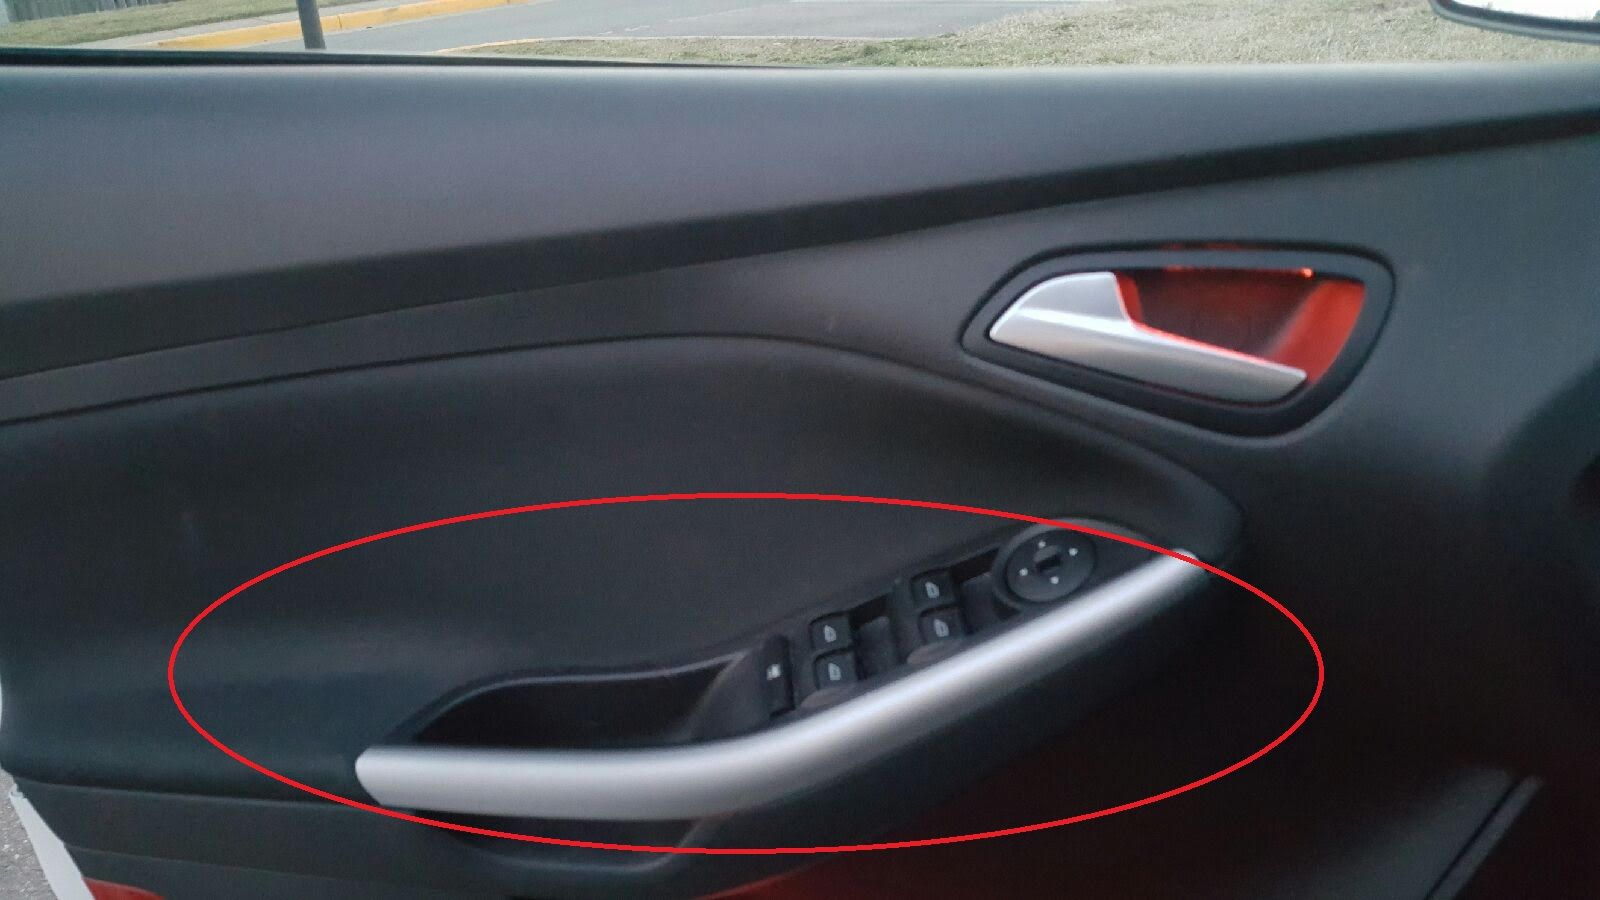 Chrome Interior Door Trim Removal Ford Focus Forum Ford Focus St Forum Ford Focus Rs Forum